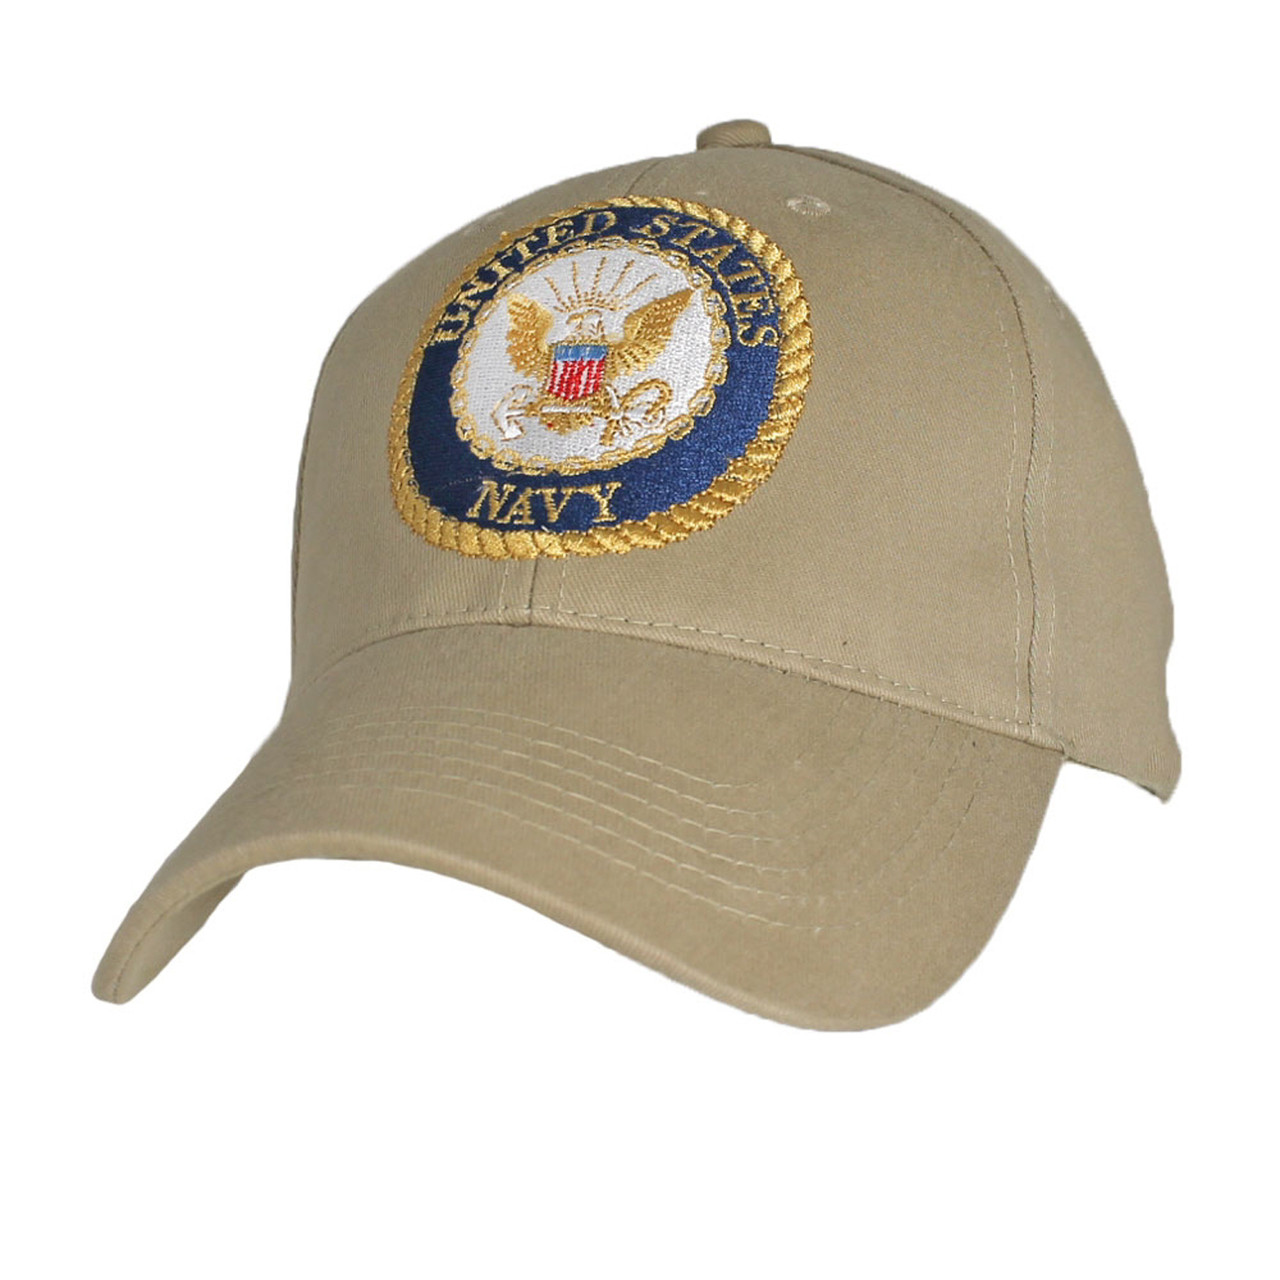 81092117ad6 U.S. Navy With Navy Seal Khaki Baseball Cap Hat Officially Licensed